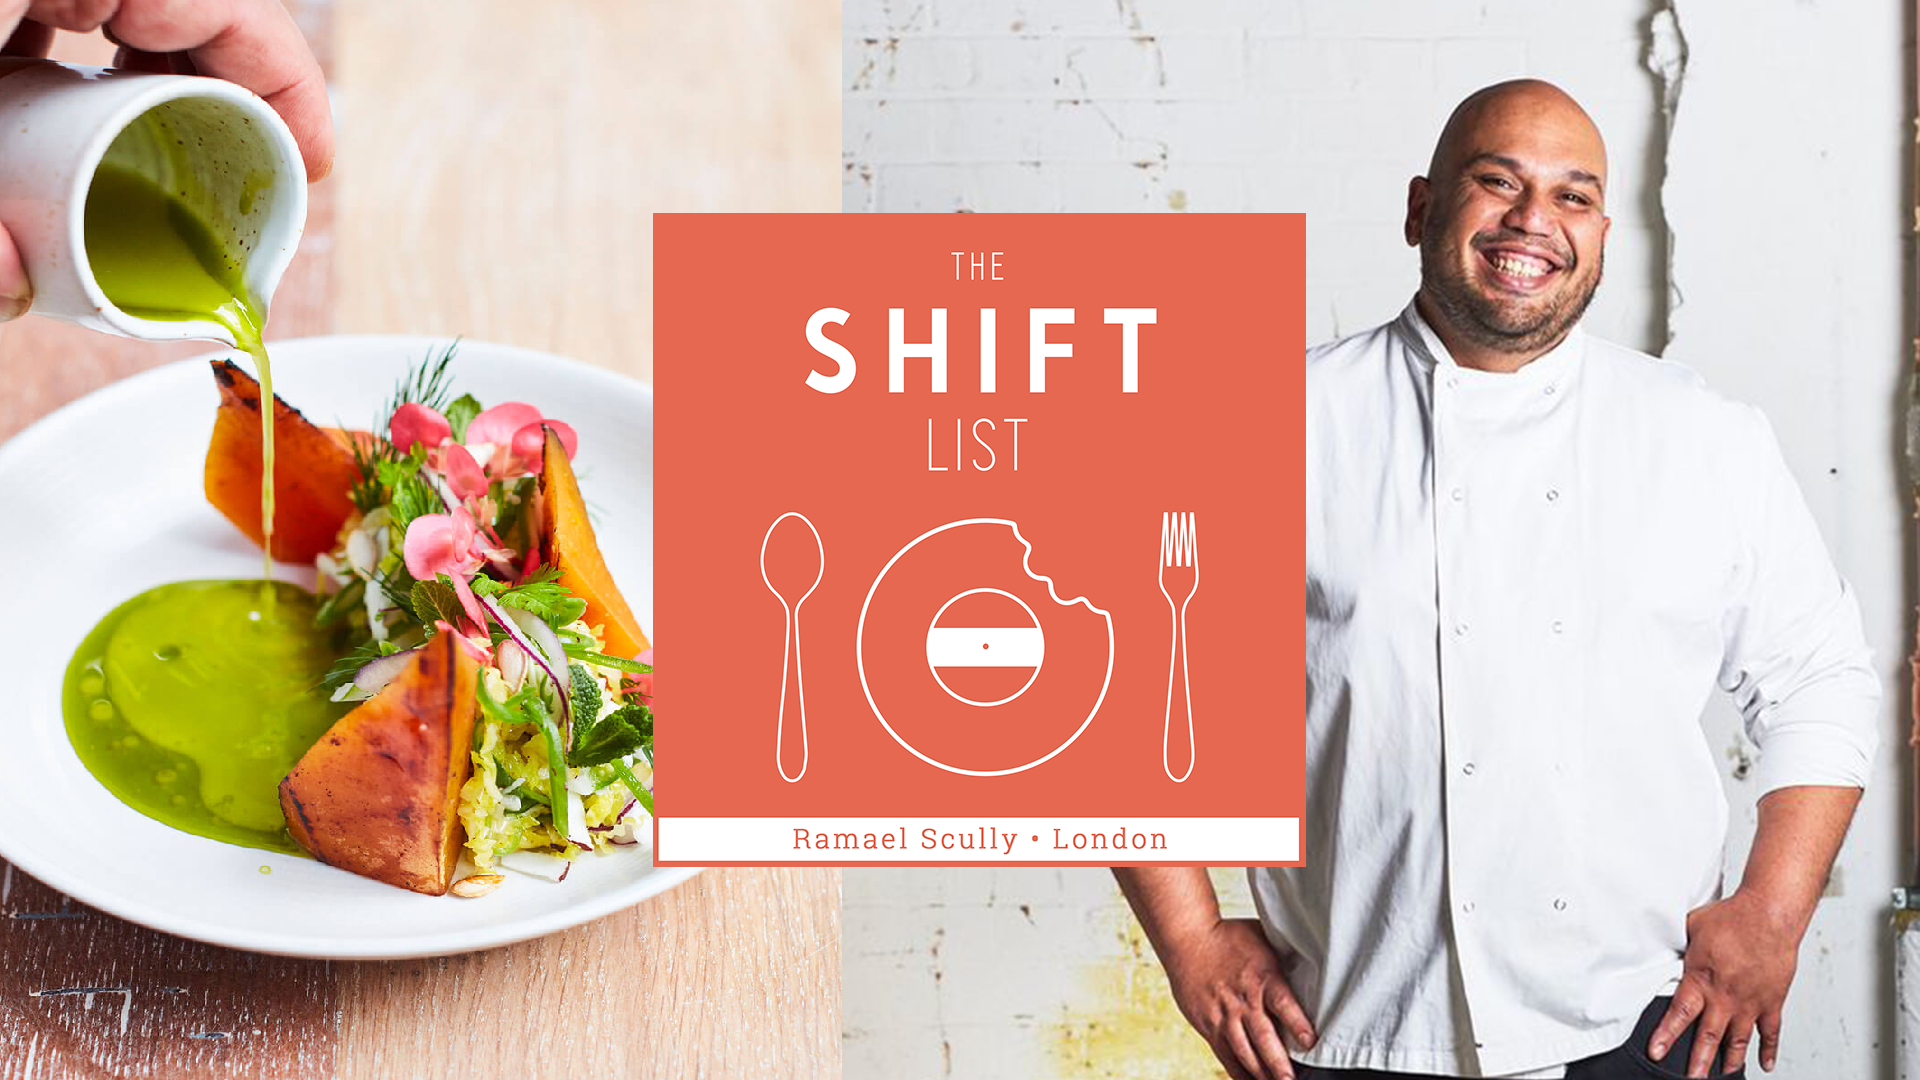 The Shift List - Ramael Scully (Scully, Ottolenghi) - London